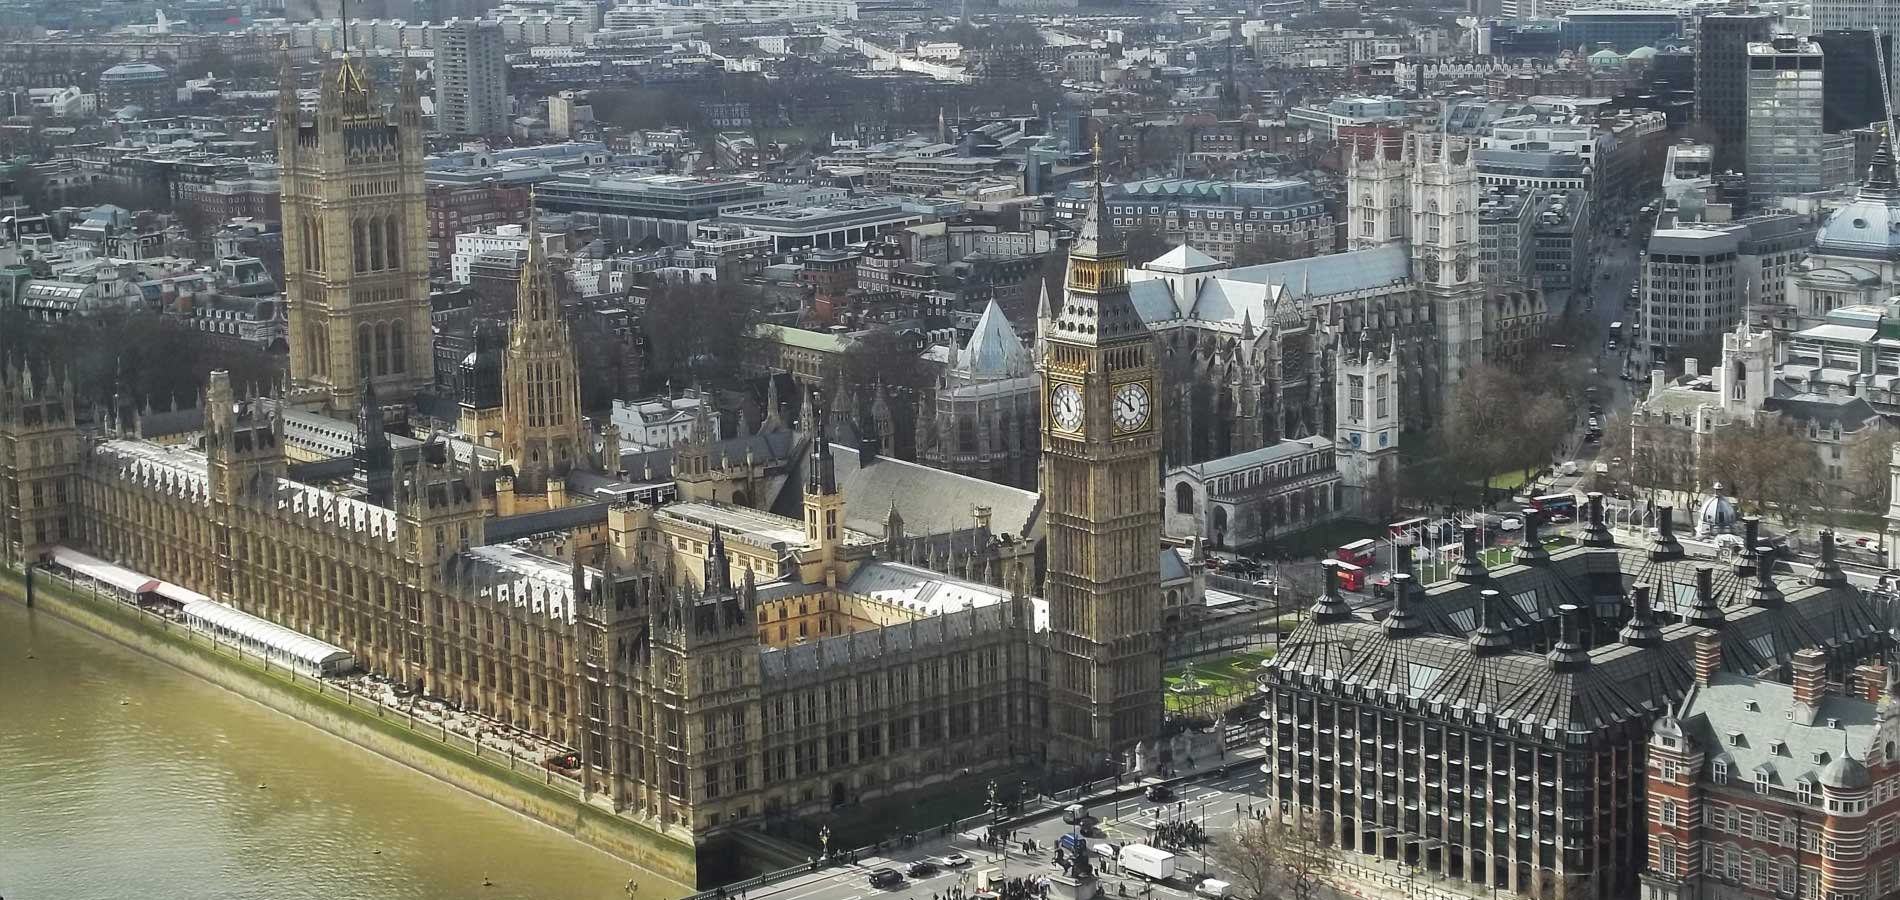 Parliament and Elizabeth Tower 2